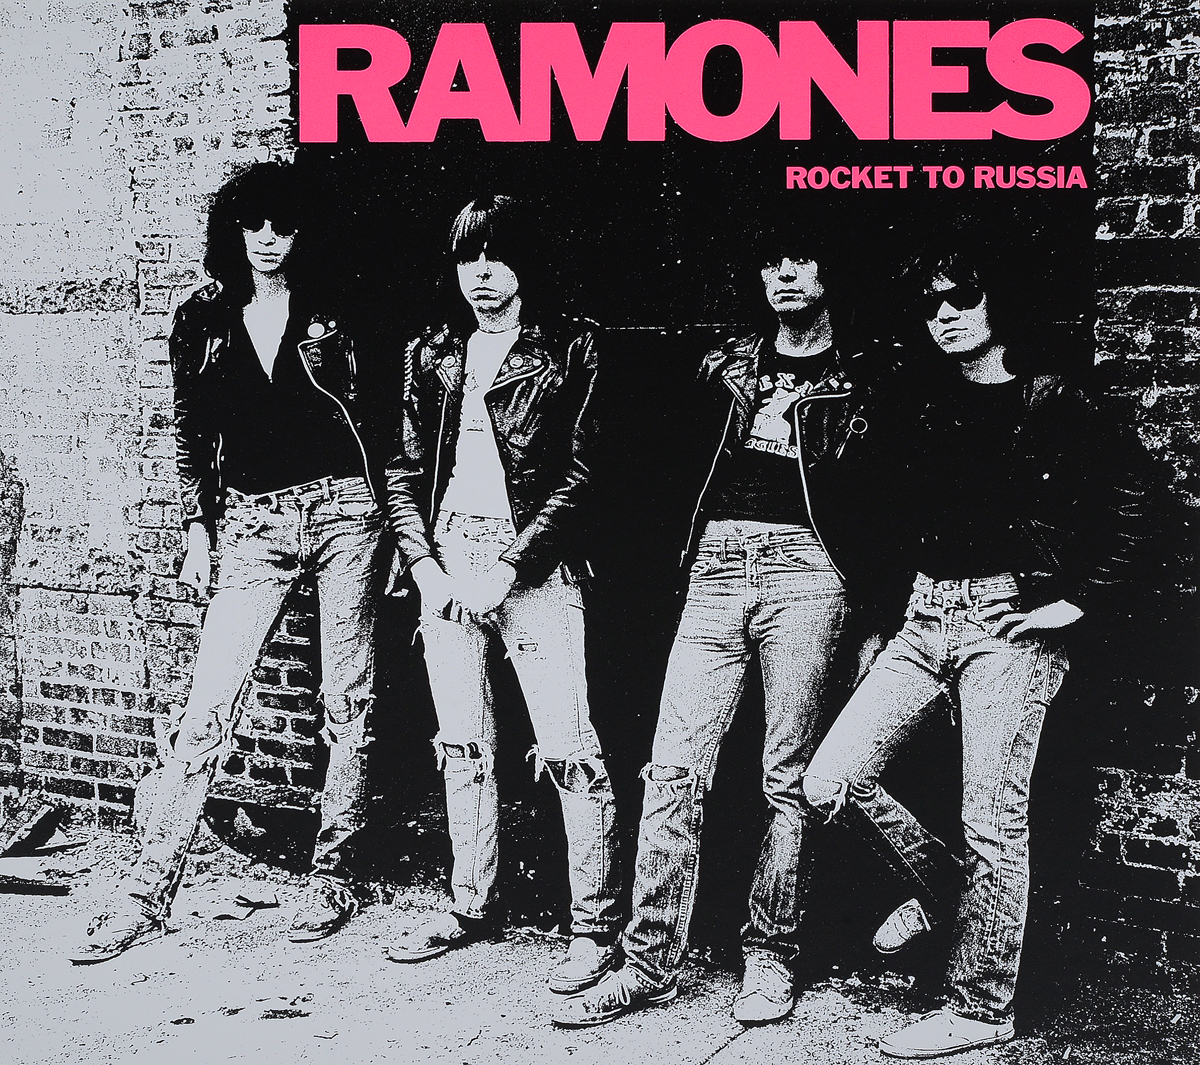 The Ramones Ramones. Rocket To Russia (40th Anniversary Deluxe Edition) (3 CD + LP) zedd zedd clarity deluxe edition 2 lp